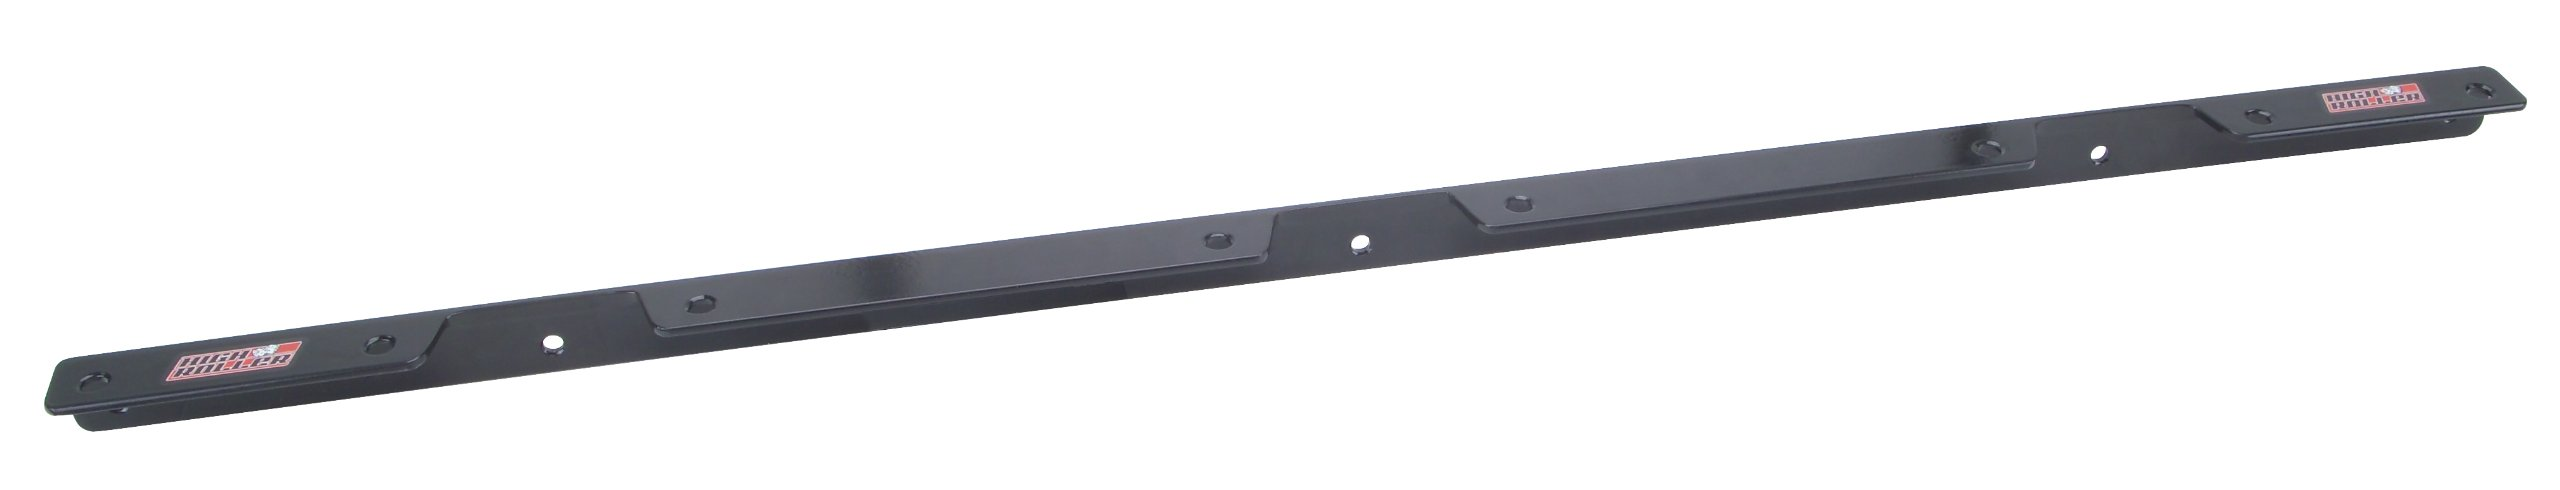 HighRoller HR501-10 Black 58'' Moto Tie Bar